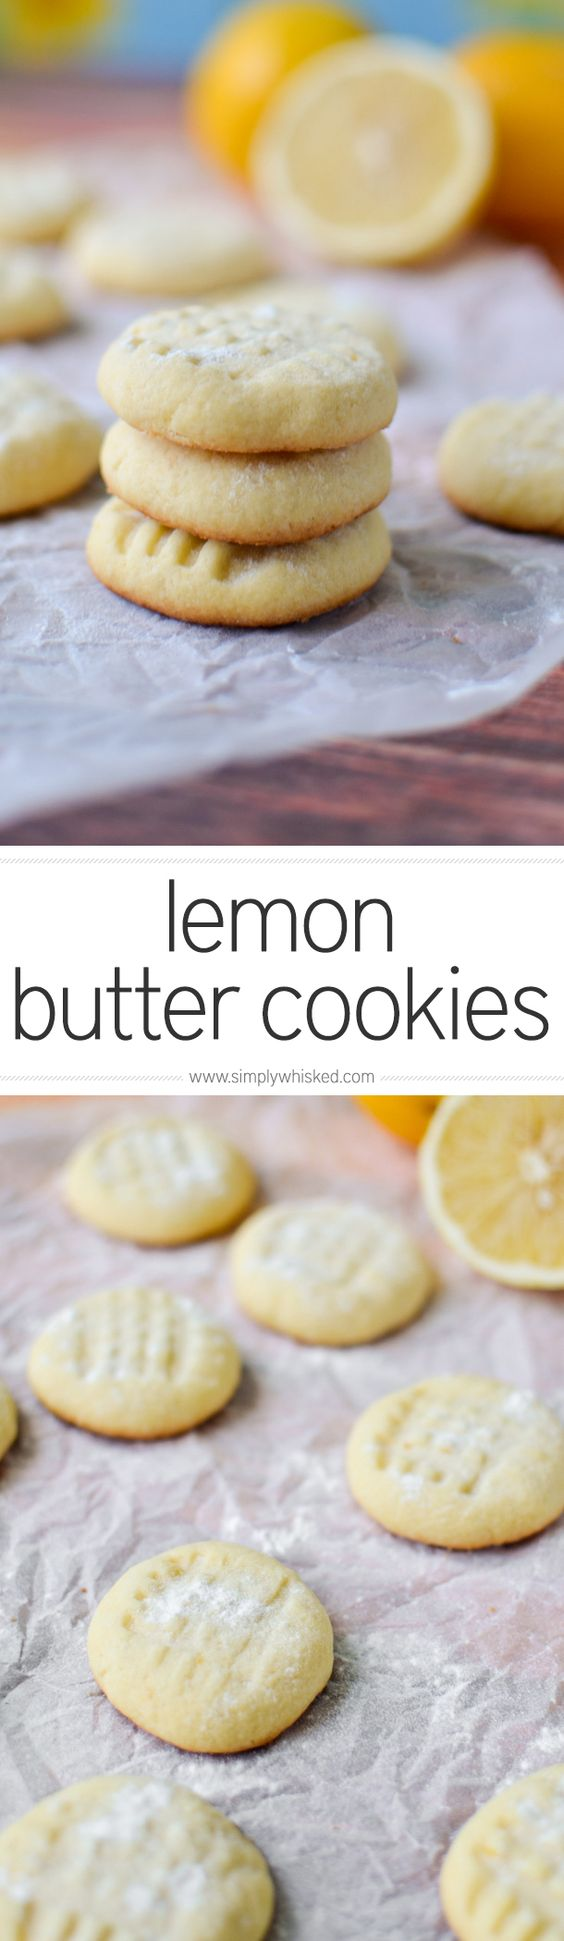 cookies simplywhisked cookies oooh and more lemon butter lemon cookies ...